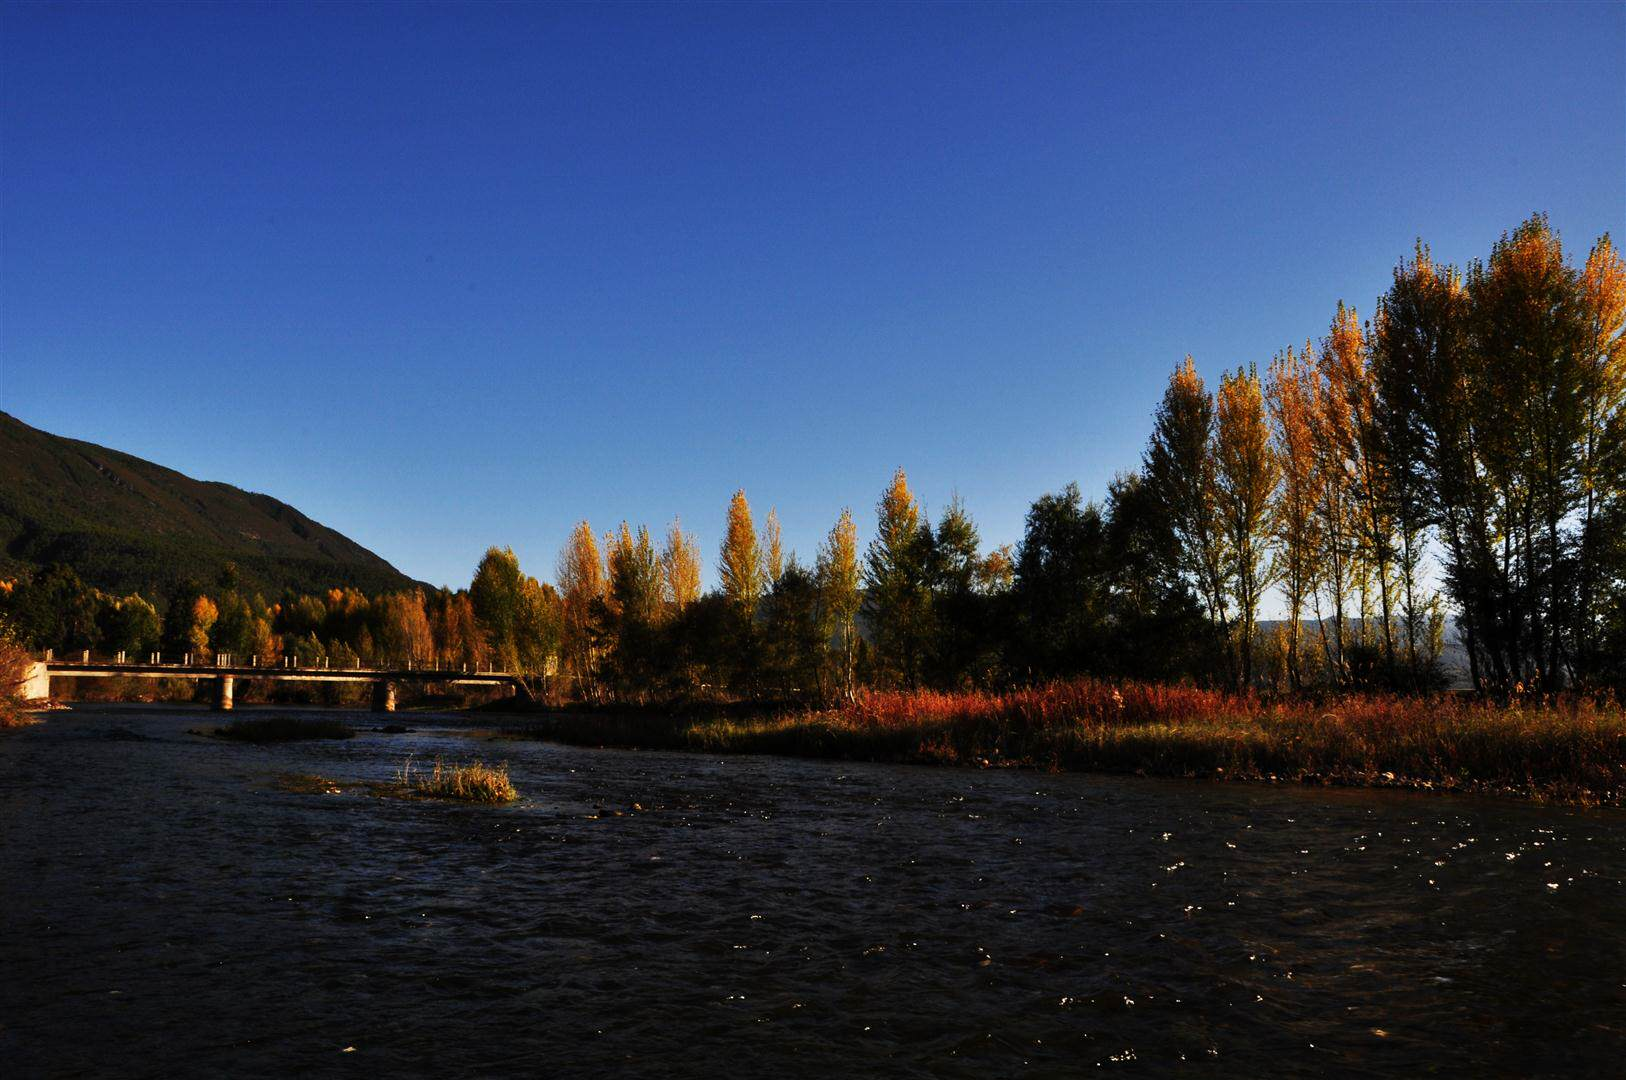 Responsible Yunnan travel in Shaxi helps protect the Heihui River